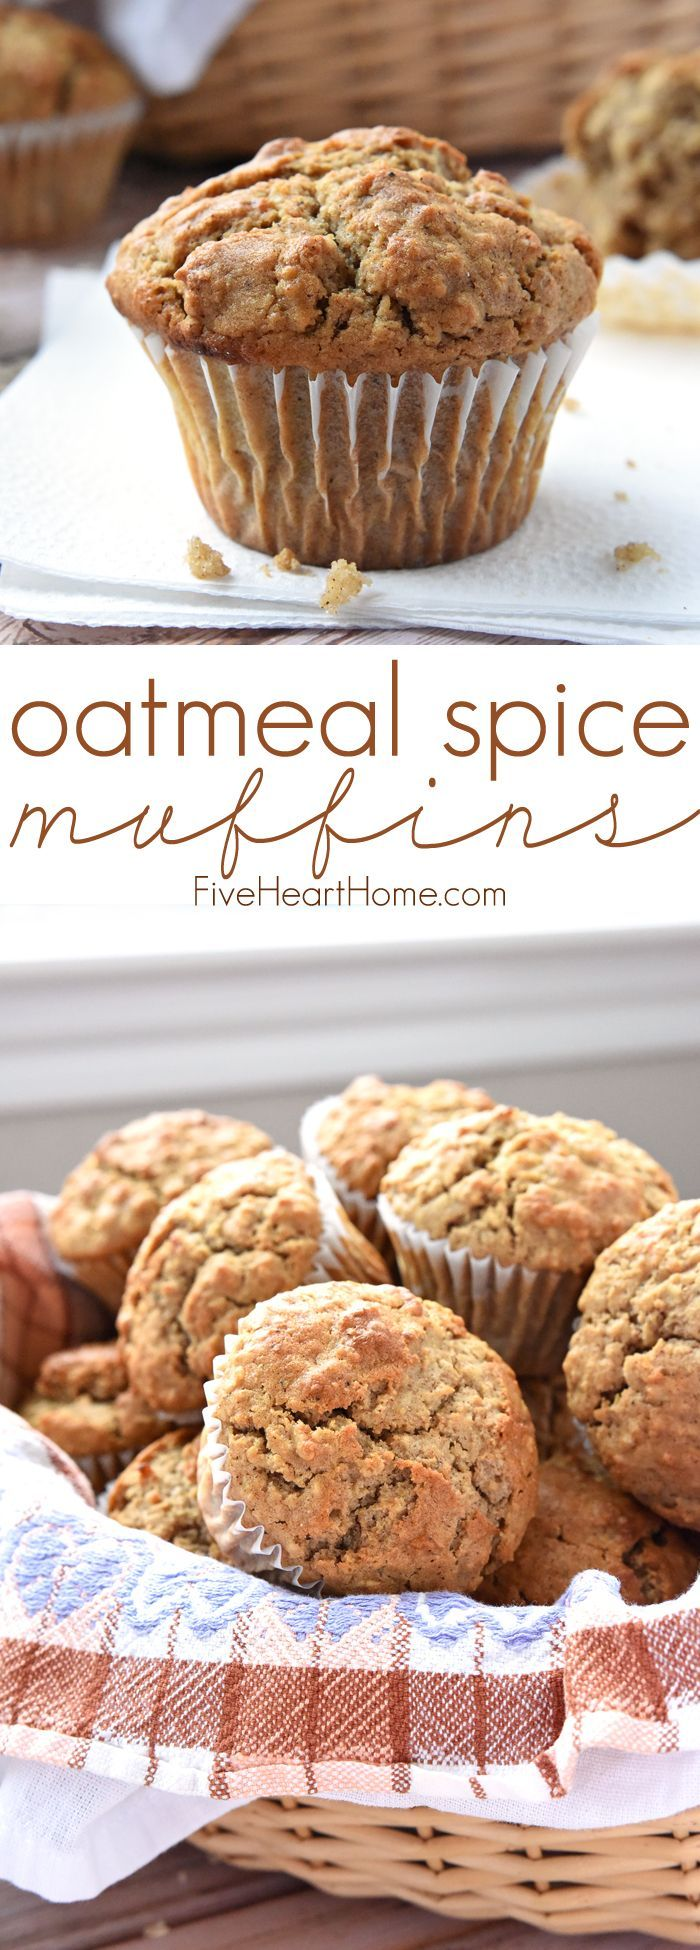 Oatmeal Spice Muffins ~ perfectly spiced with crunchy tops and pillowy centers, making them a wholesome, delicious breakfast on-the-go or anytime snack!